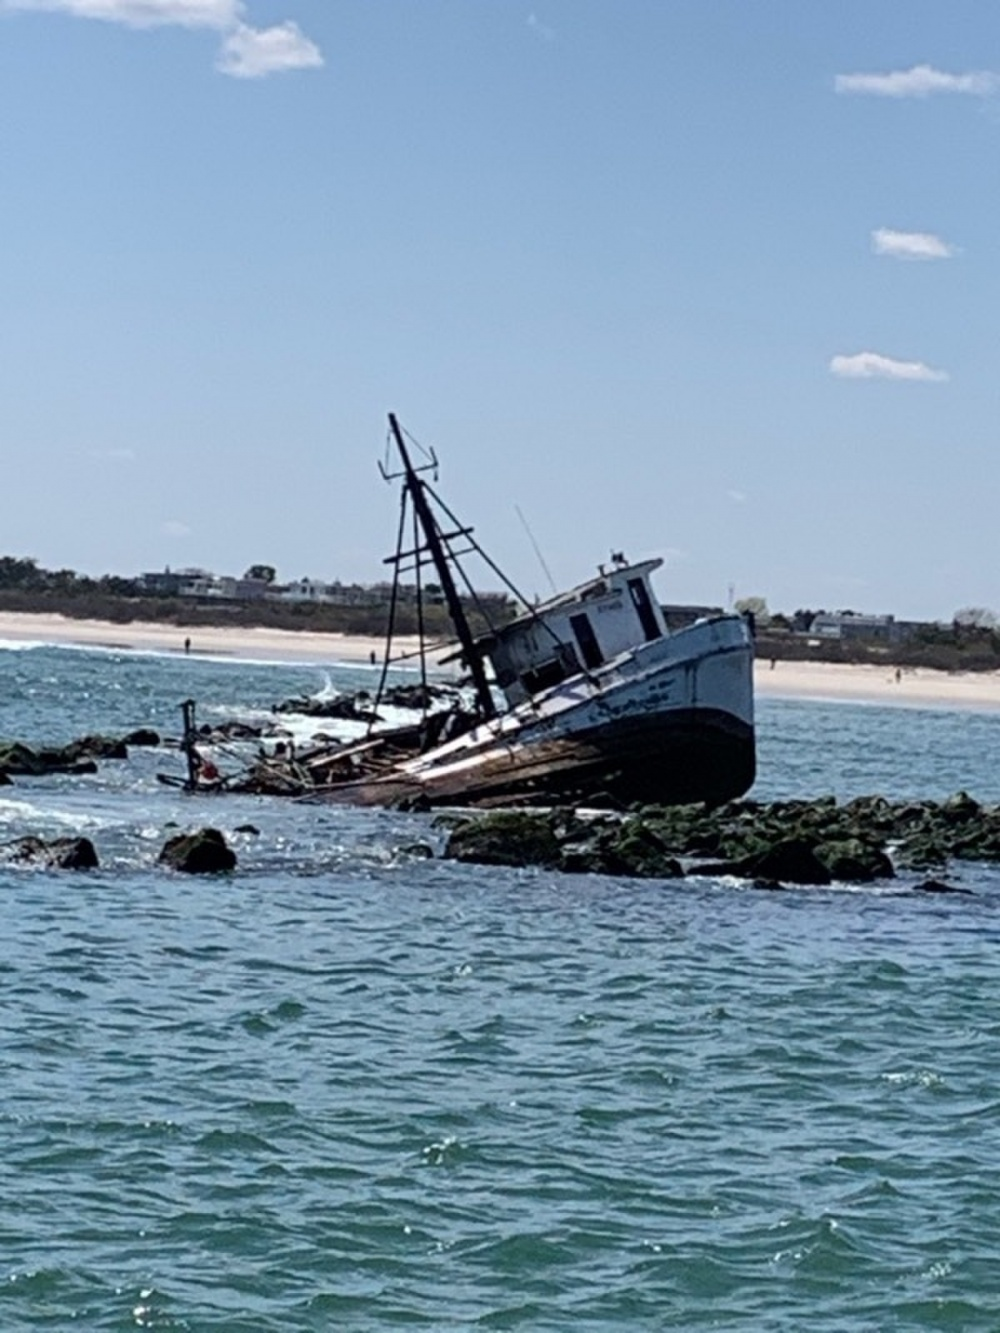 The fishing vessel Bay of Isle sits grounded on the Barnegat Inlet Jetty in Ocean County, N.J., May 7, 2020. The vessel was being monitored after two fishermen ran aground and were rescued by an aircrew from U.S. Coast Guard Air Station Atlantic City, NJ. (U.S. Coast Guard photo by Ensign Holden Bagnal)